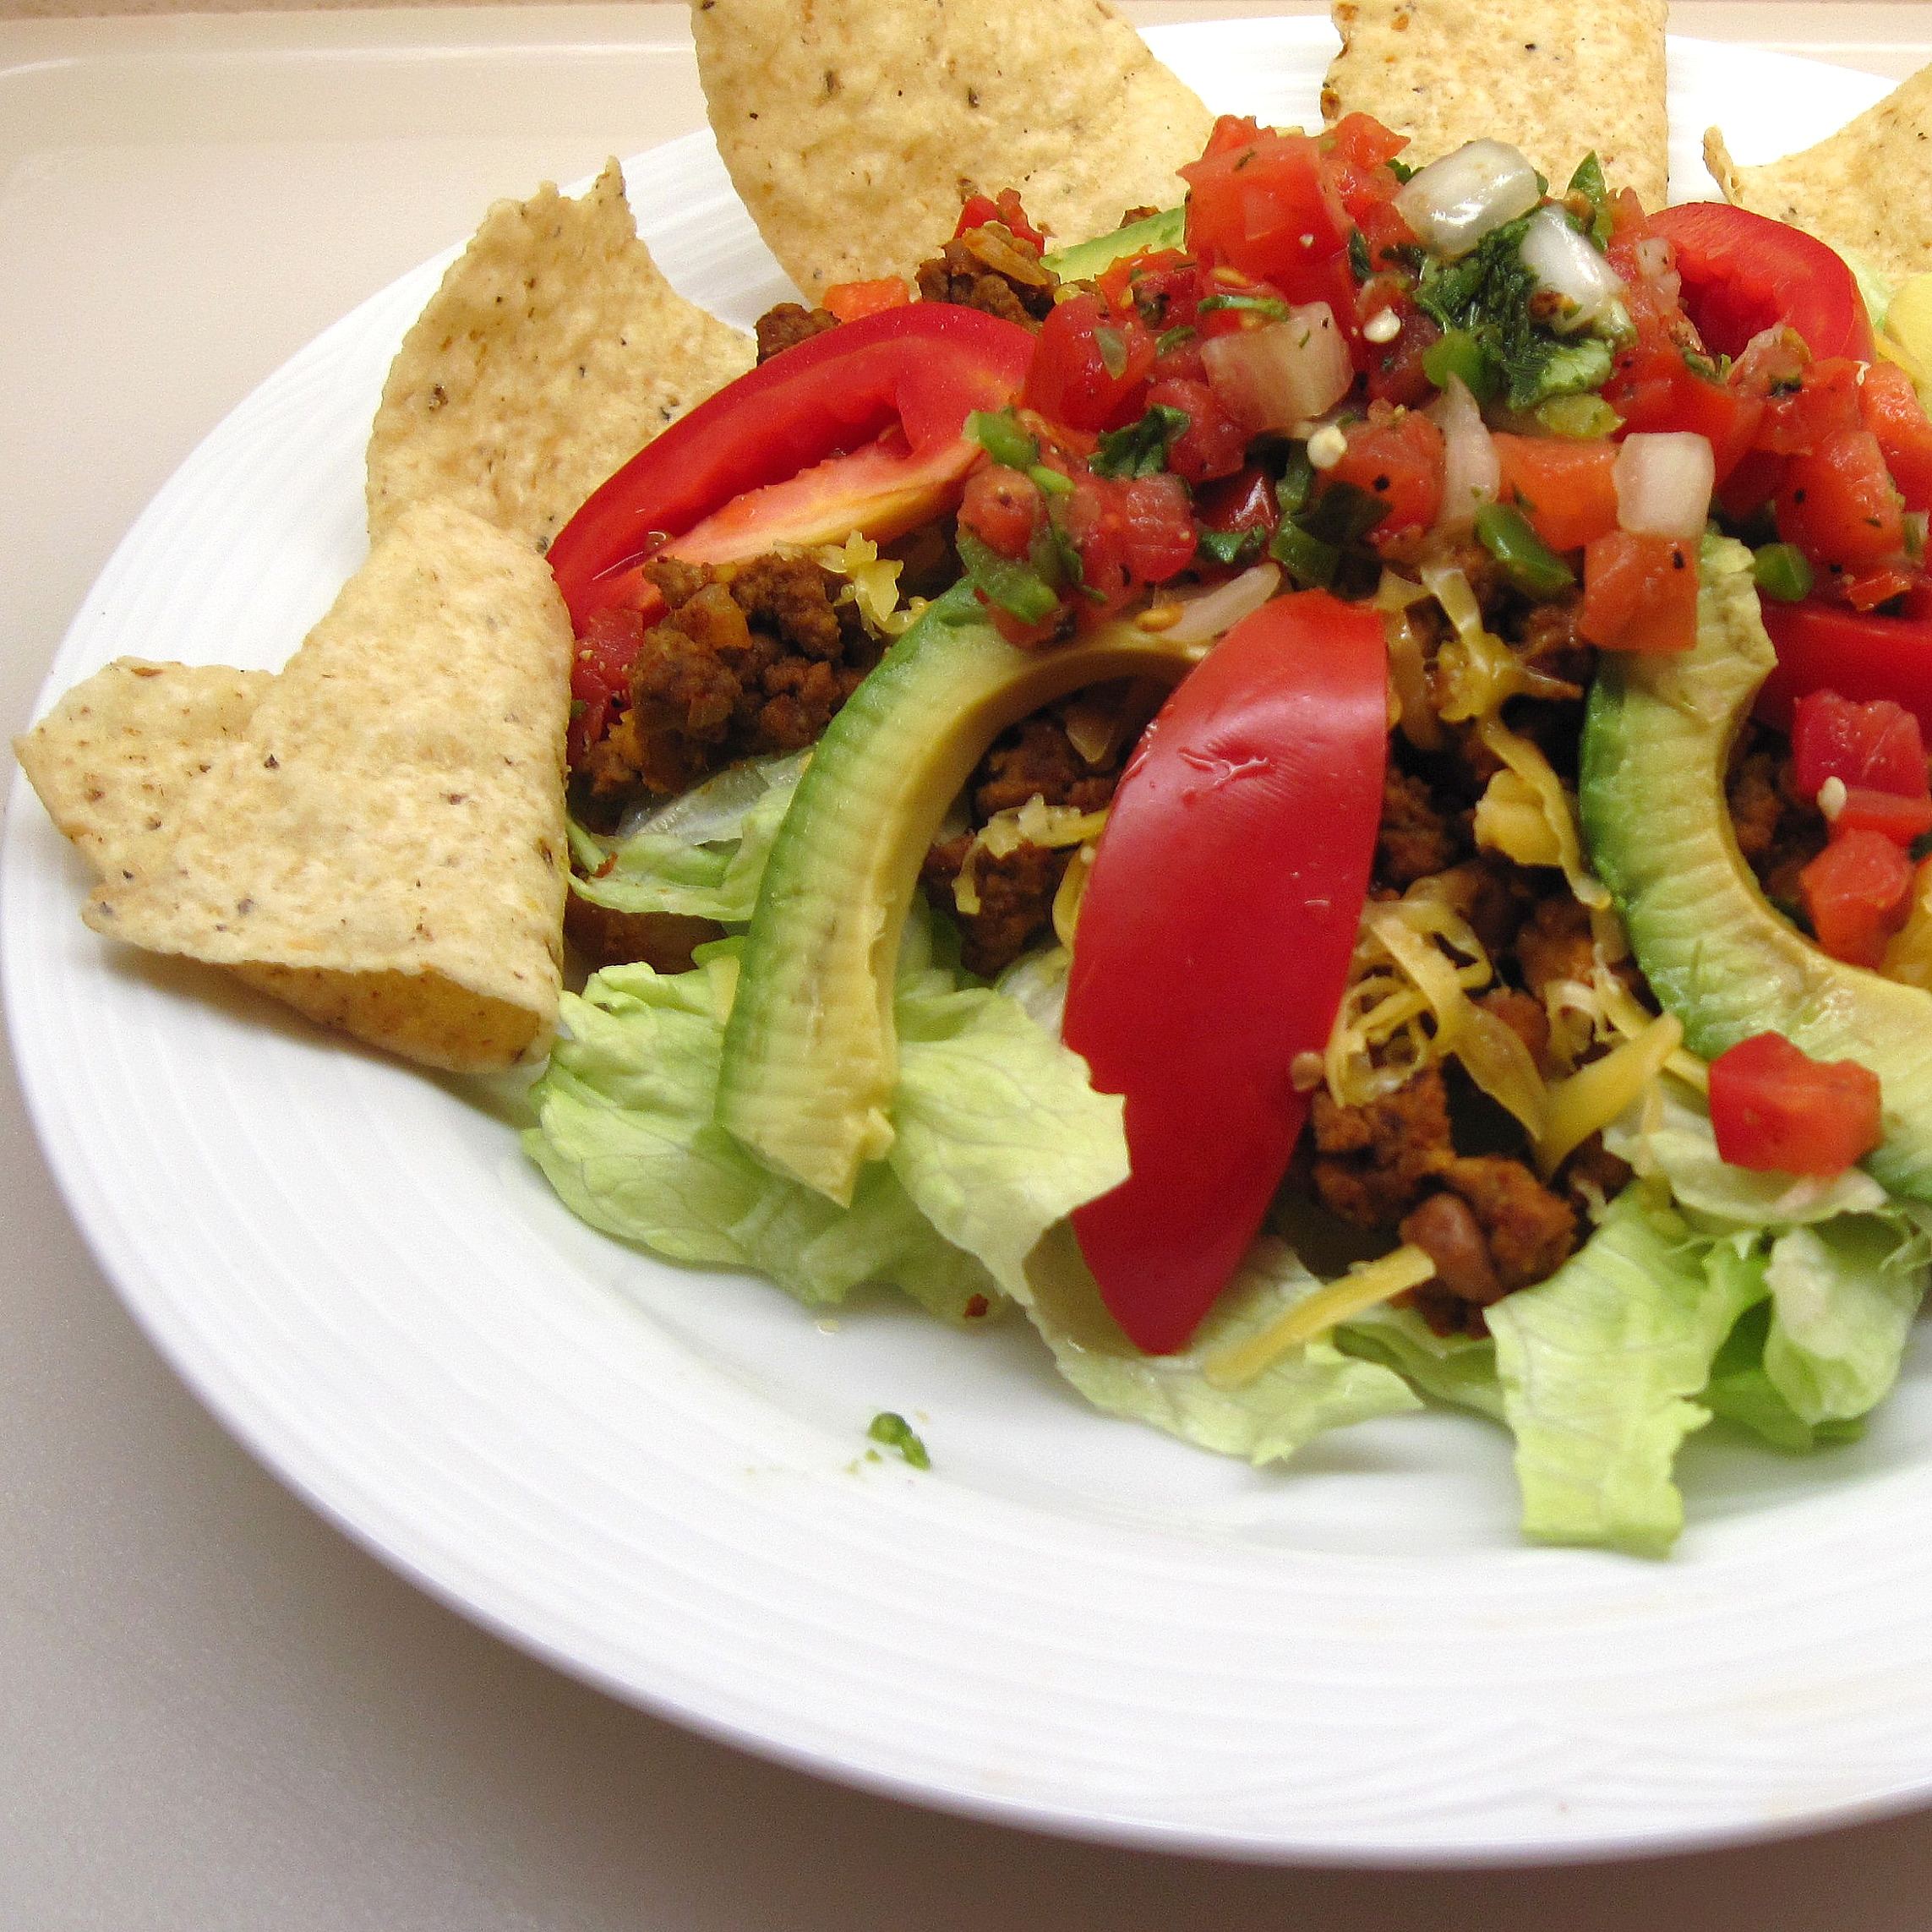 Tostada Salad for 2 | In the kitchen with Kath